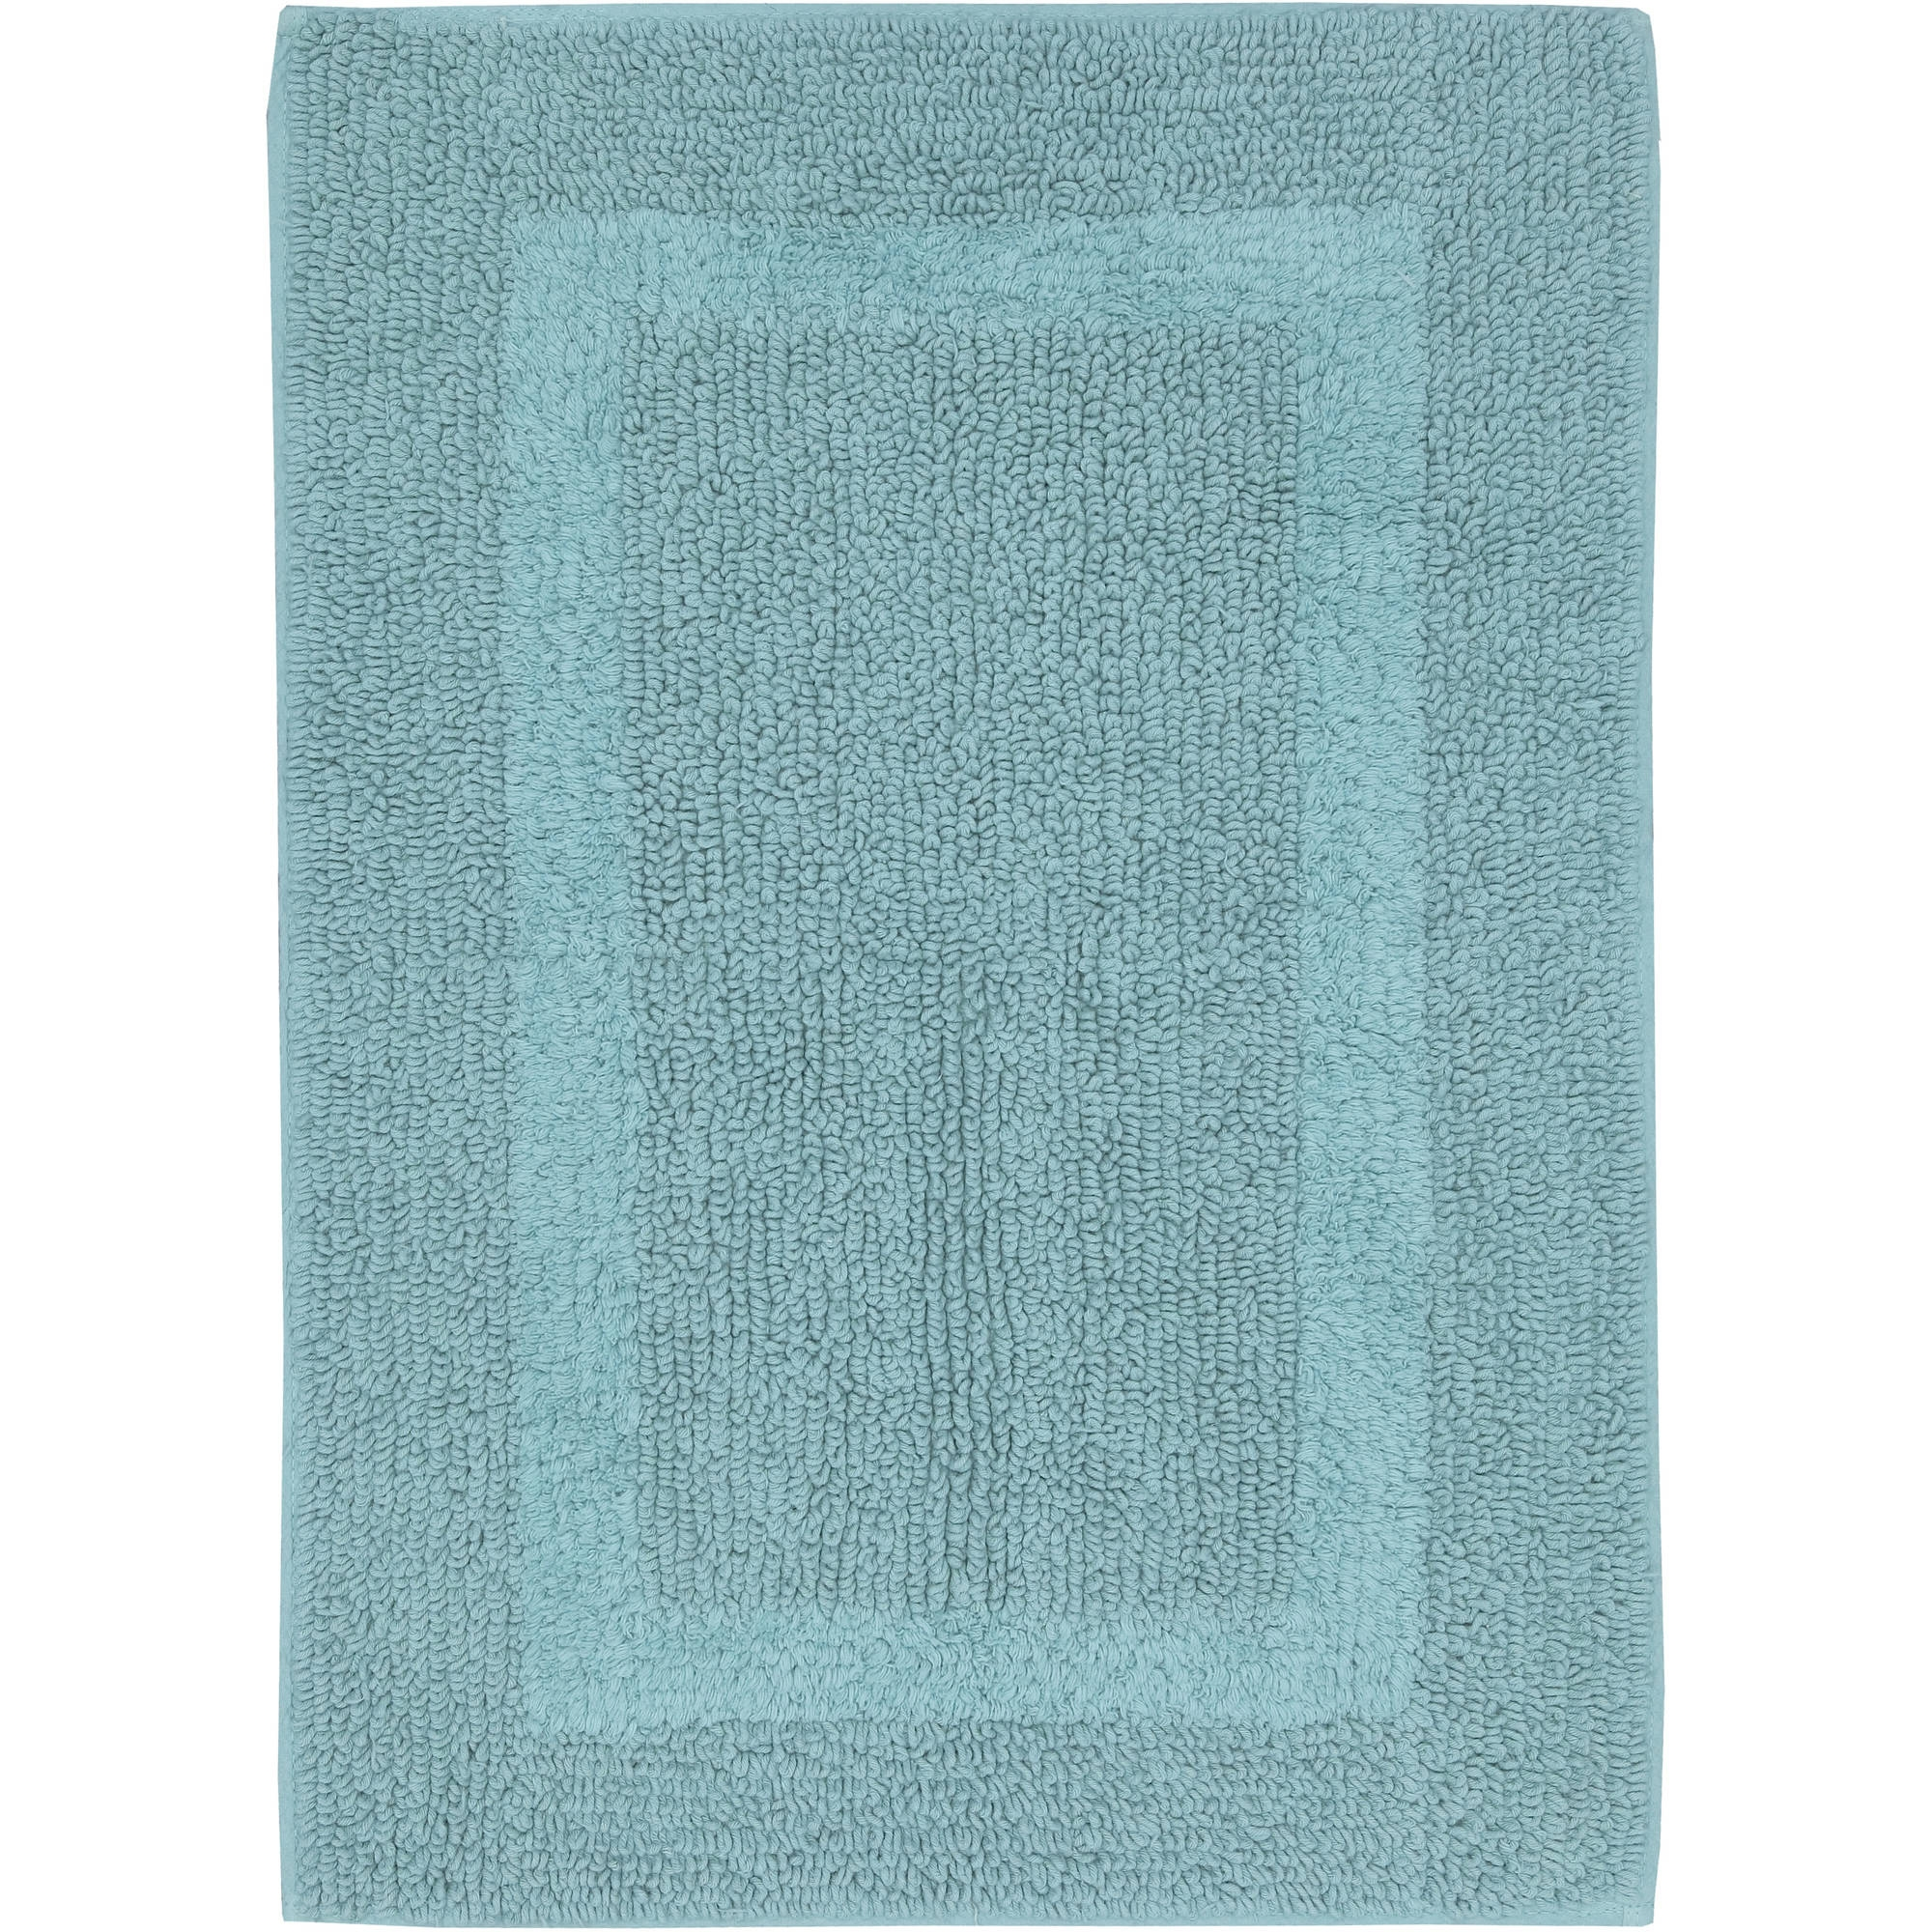 Permalink to Dark Green Bathroom Rugs